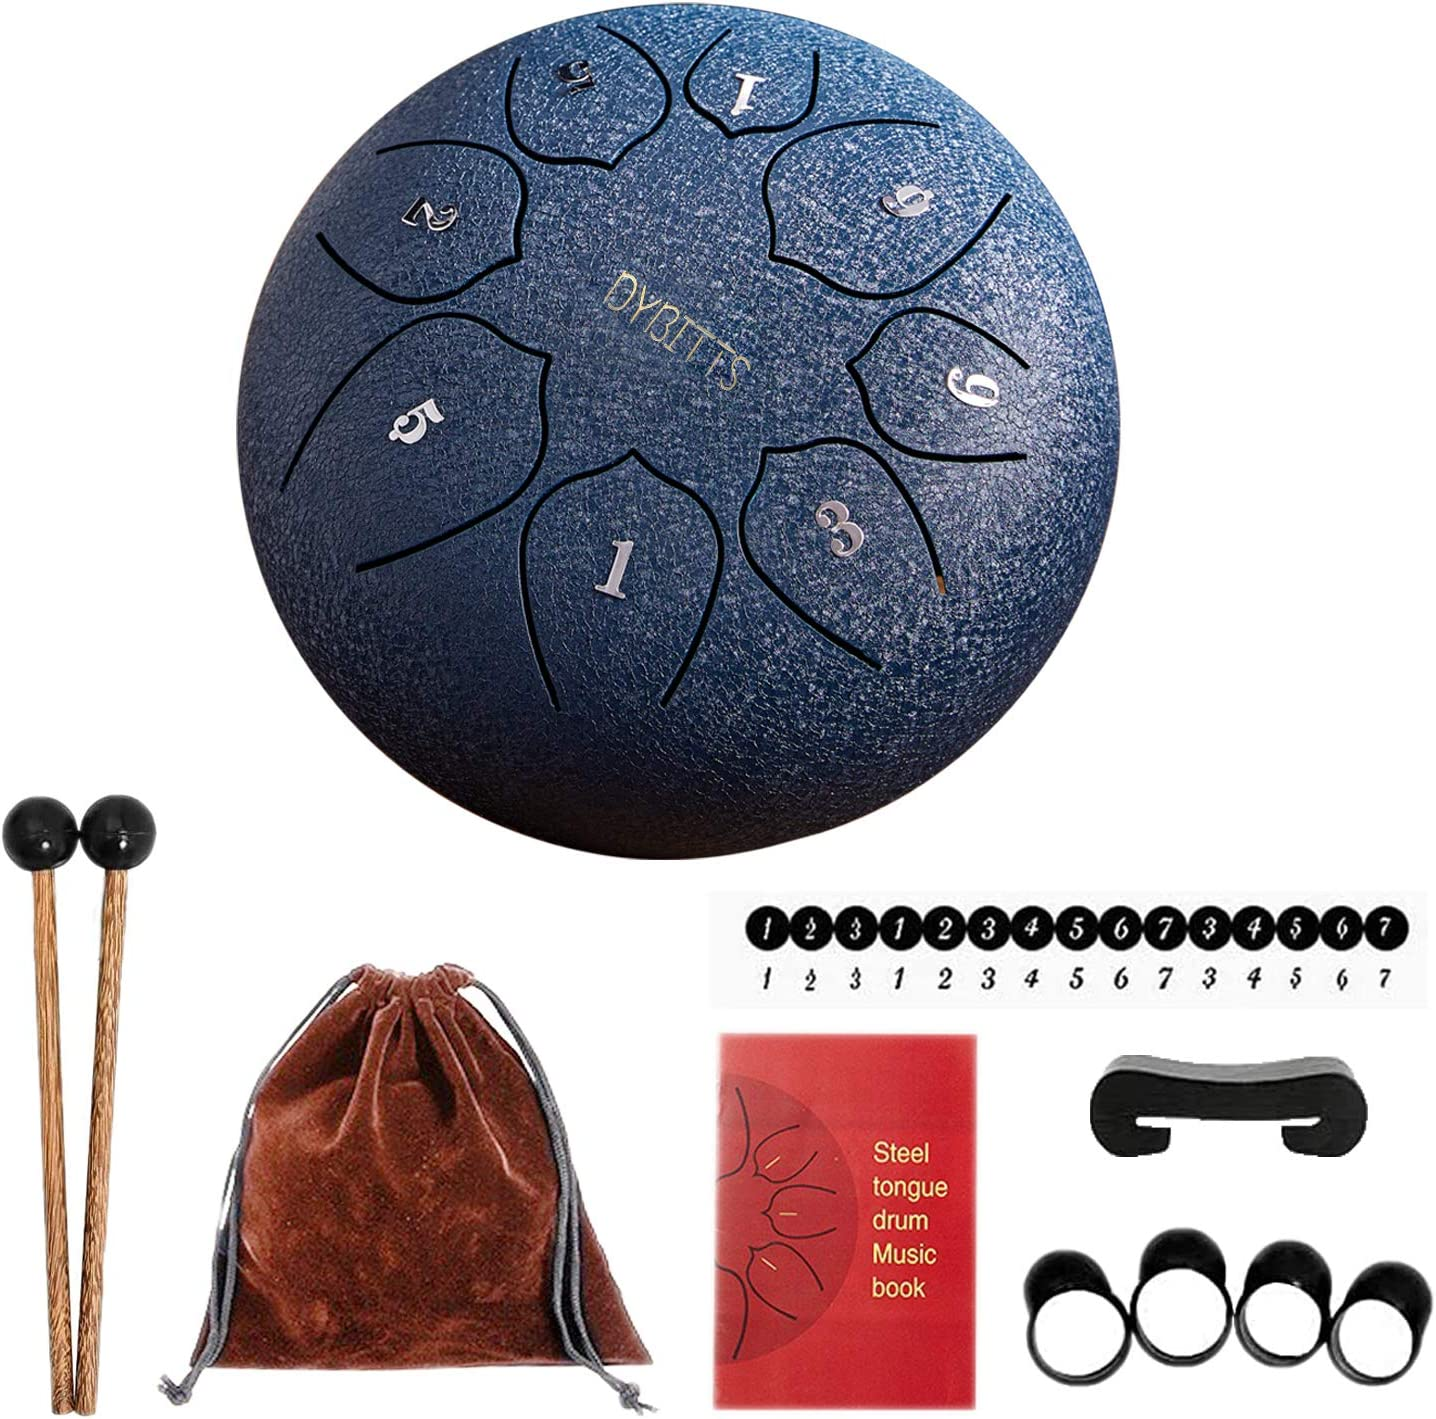 Finger Cover DYBITTS Hand Pan Drum 6 inches 8 Tone Hang with Drumsticks Steel Tongue Drum Bag Tank Drum Percussion Instrument for Musical Education Concert Mind Healing Yoga Meditation